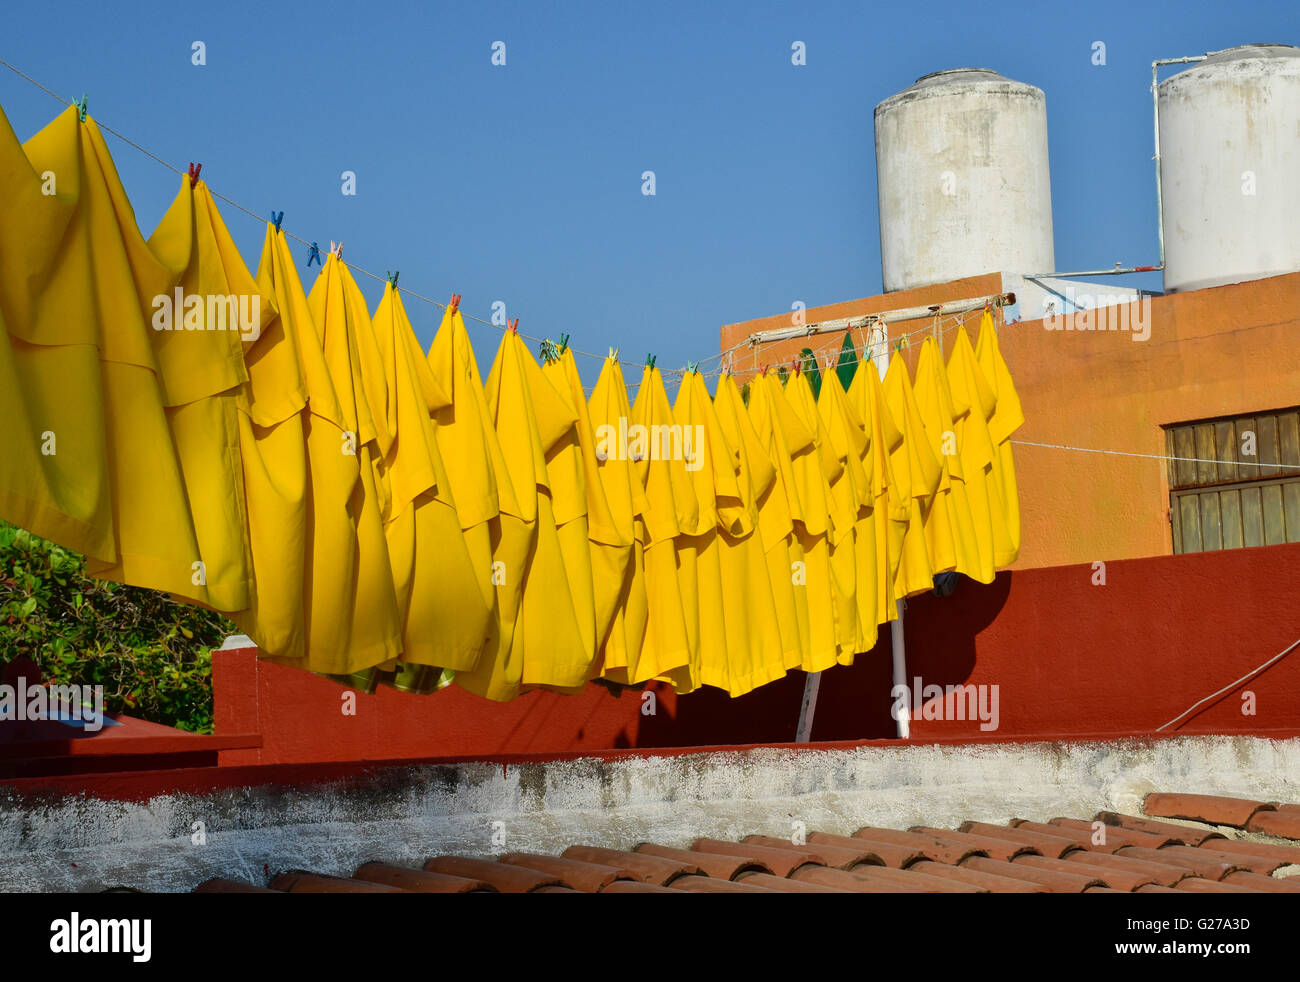 Yellow tablecloths on clothesline. - Stock Image